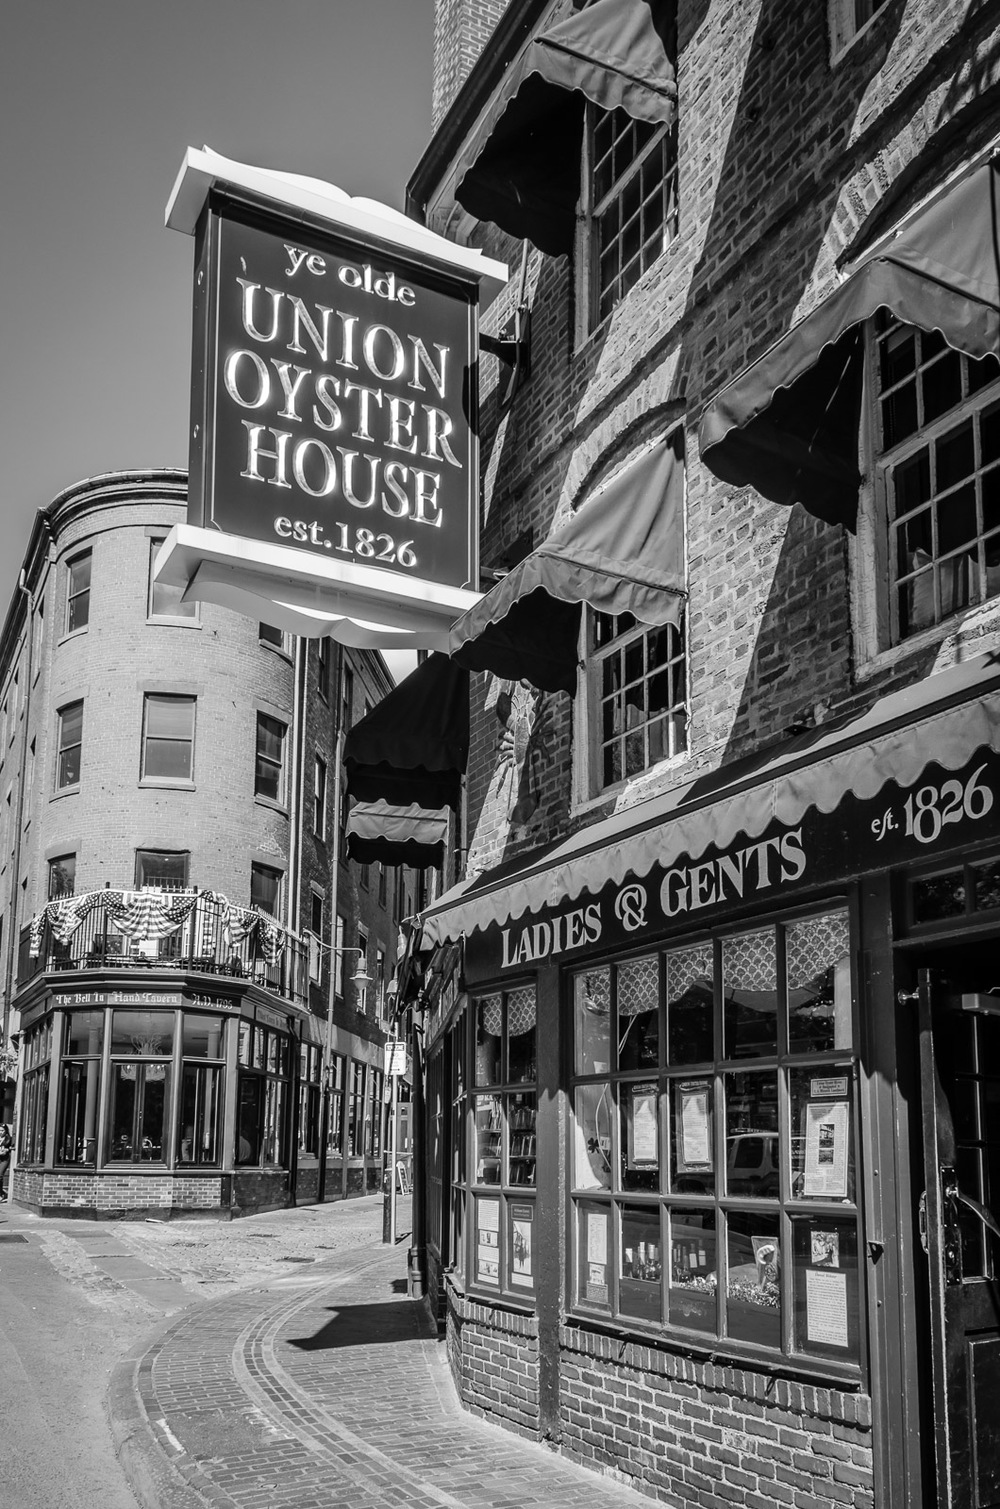 Union Oyster House, Boston, Massachusetts